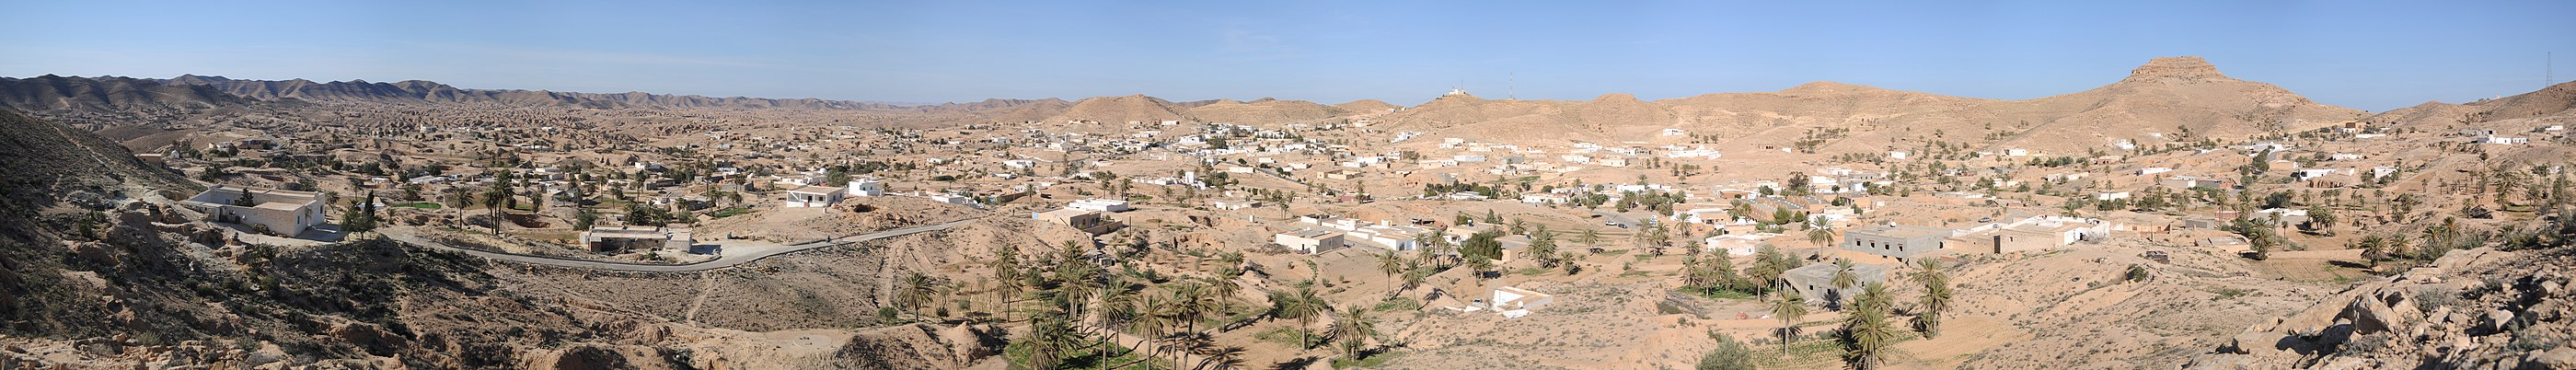 Panorama over Matmata, januar 2011.